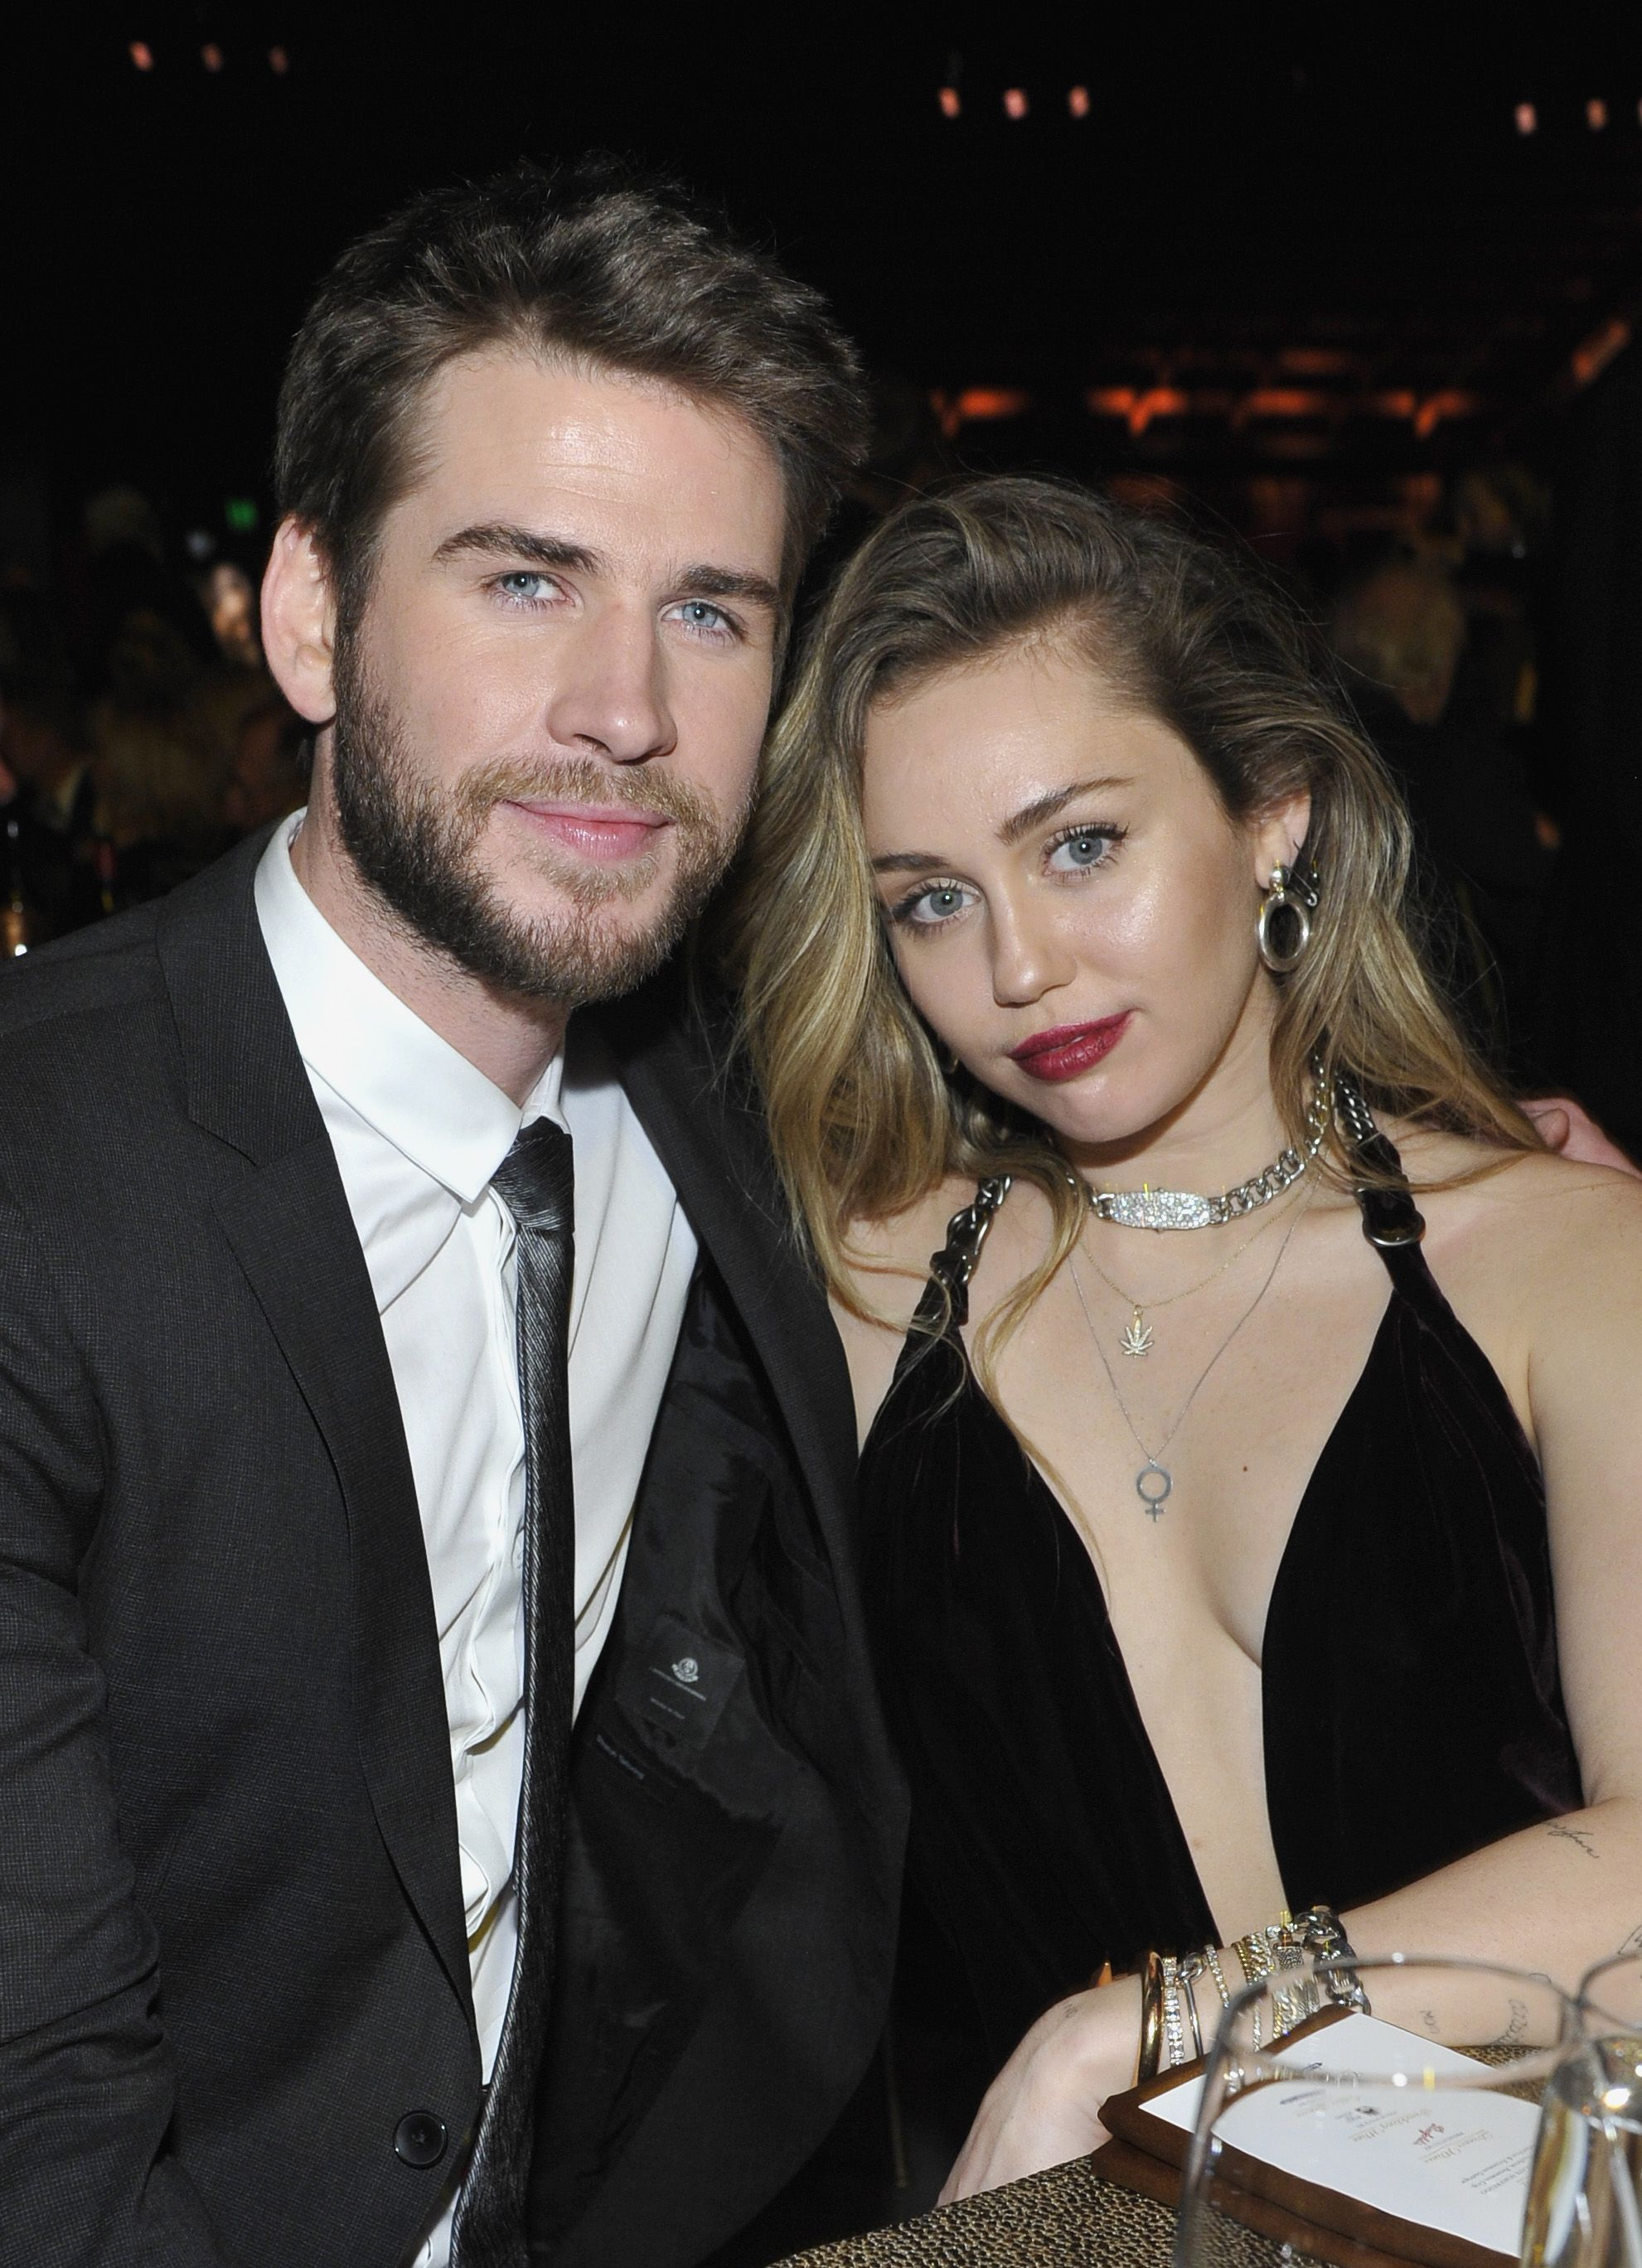 Who is miley cyrus dating with depression